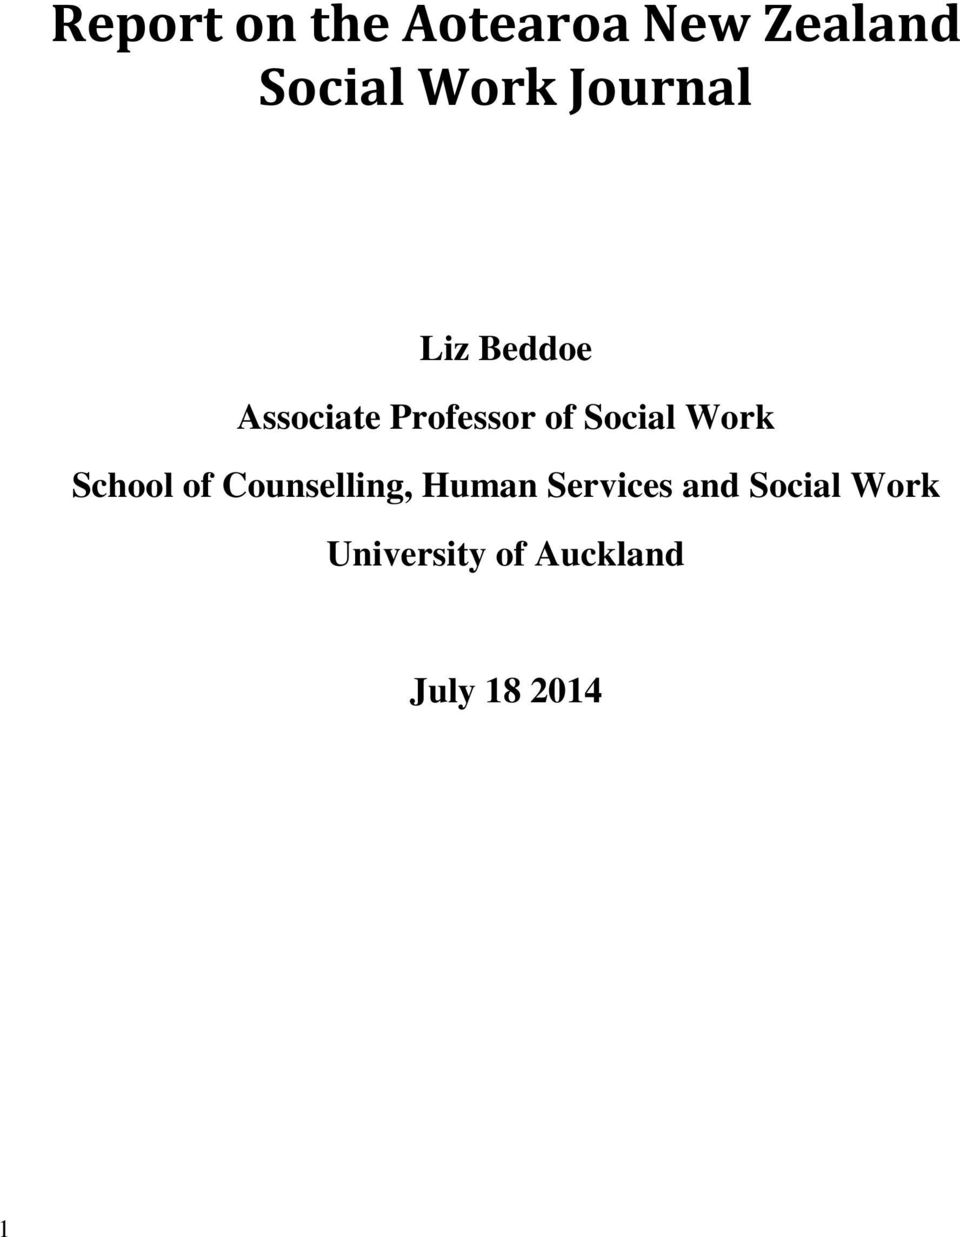 Social Work School of Counselling, Human